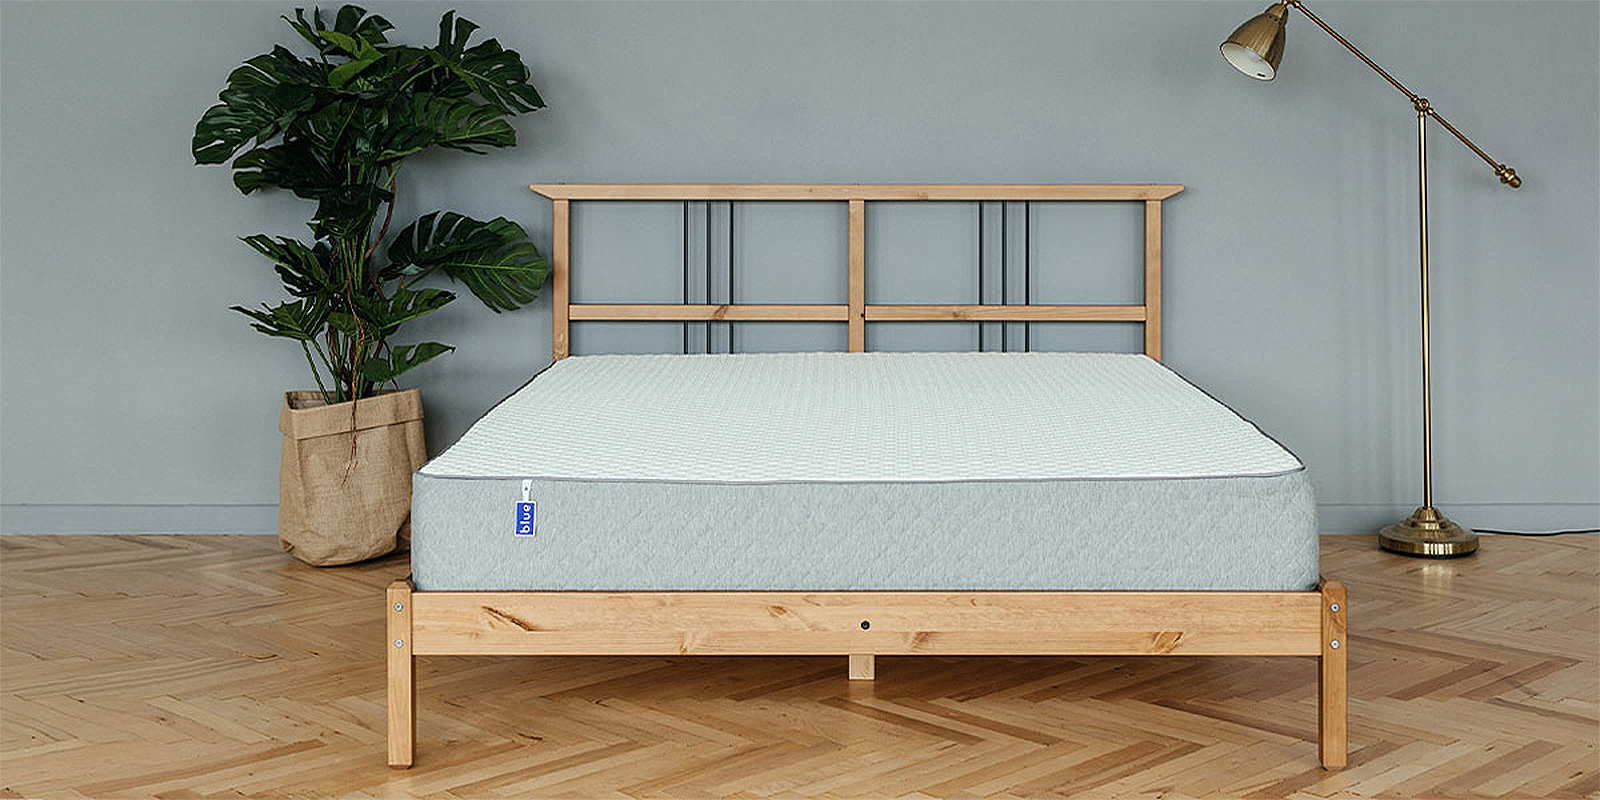 Матрас Blue Sleep 140х200